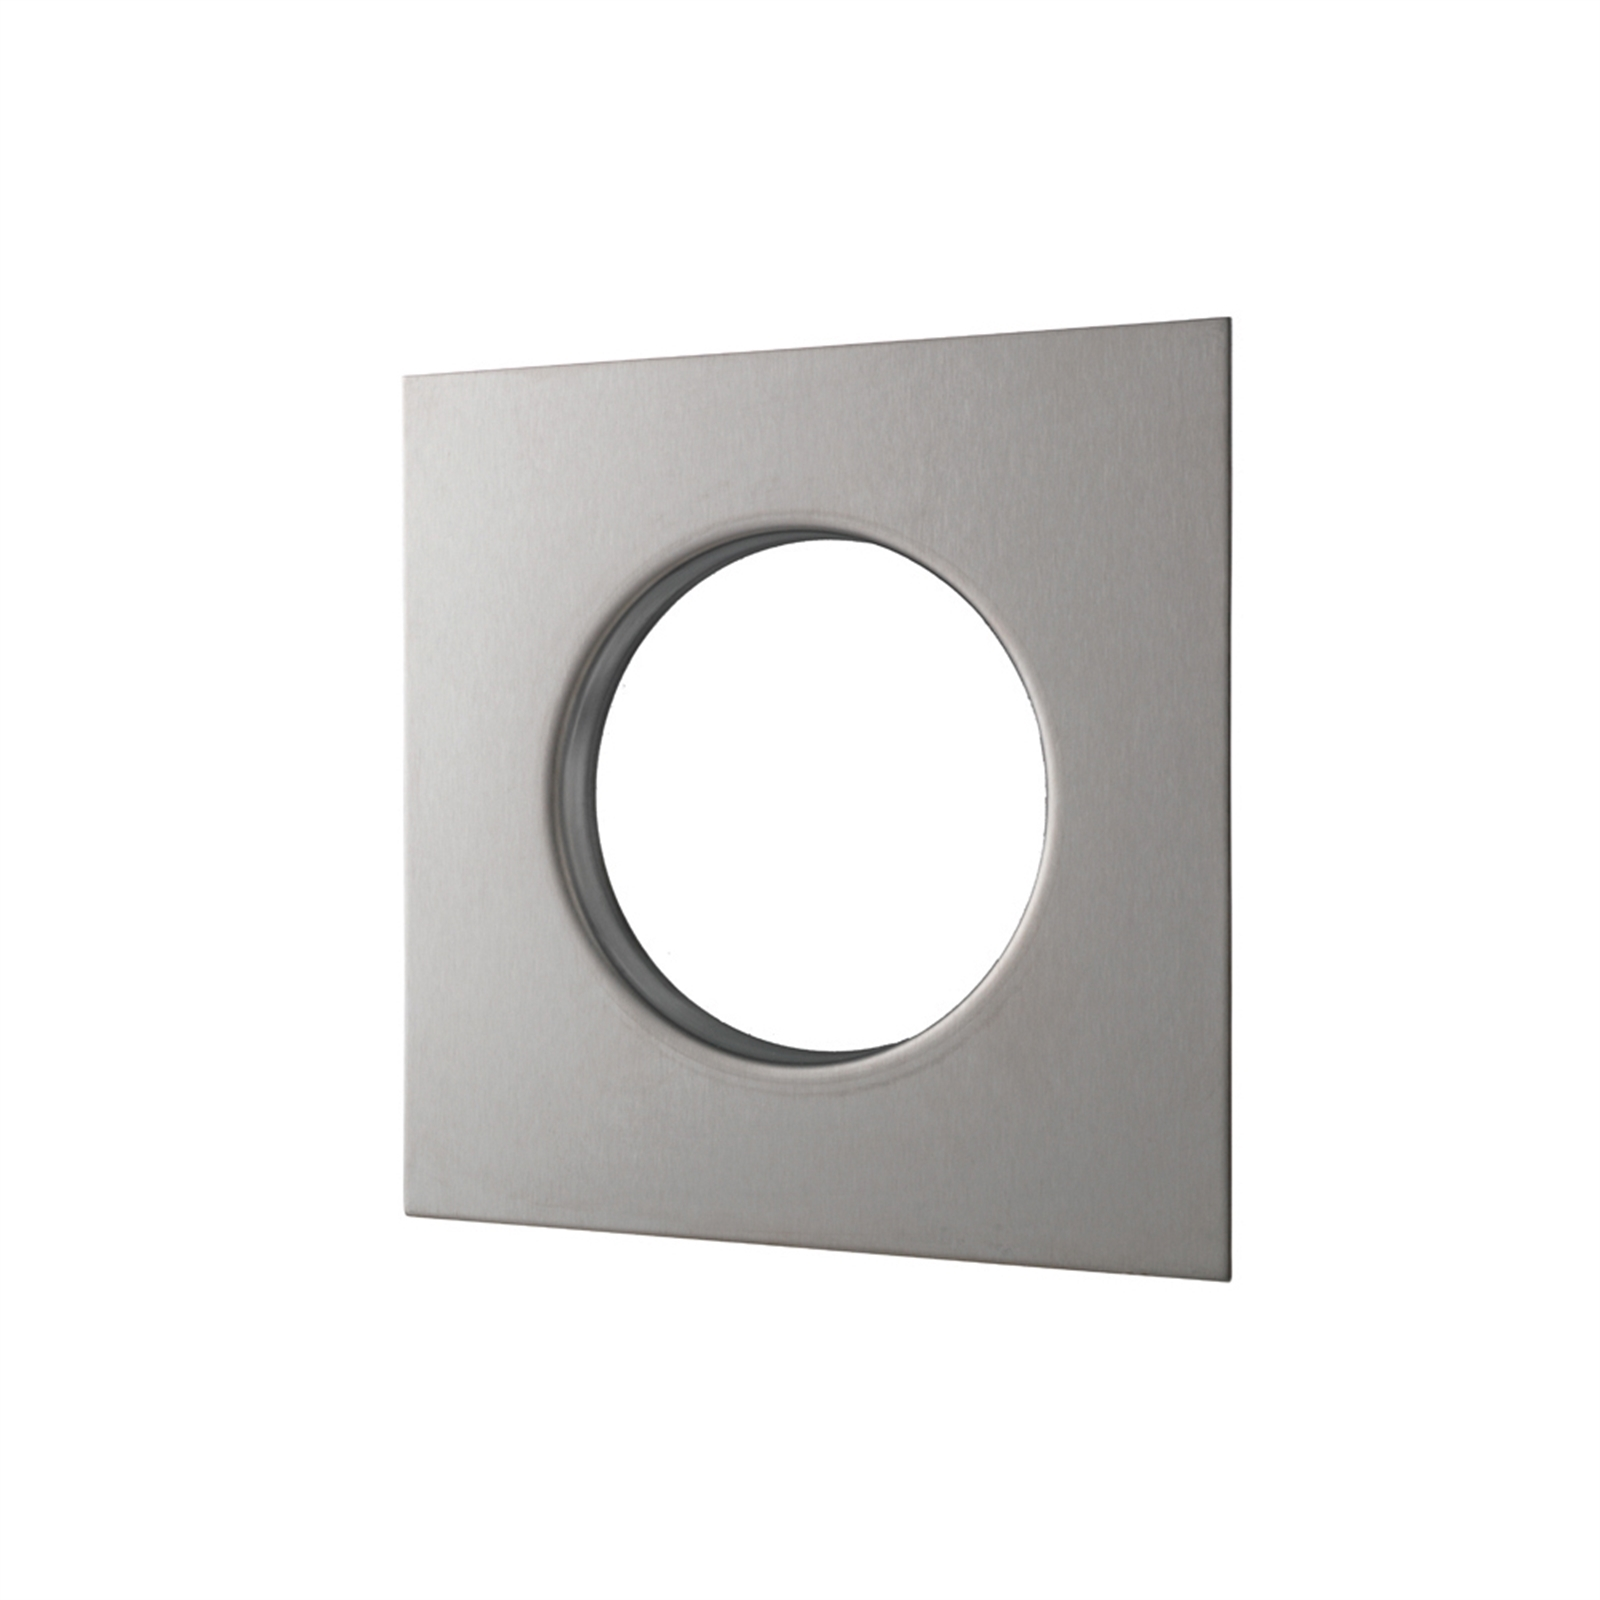 Sandleford Stainless Steel Square Newspaper Ring